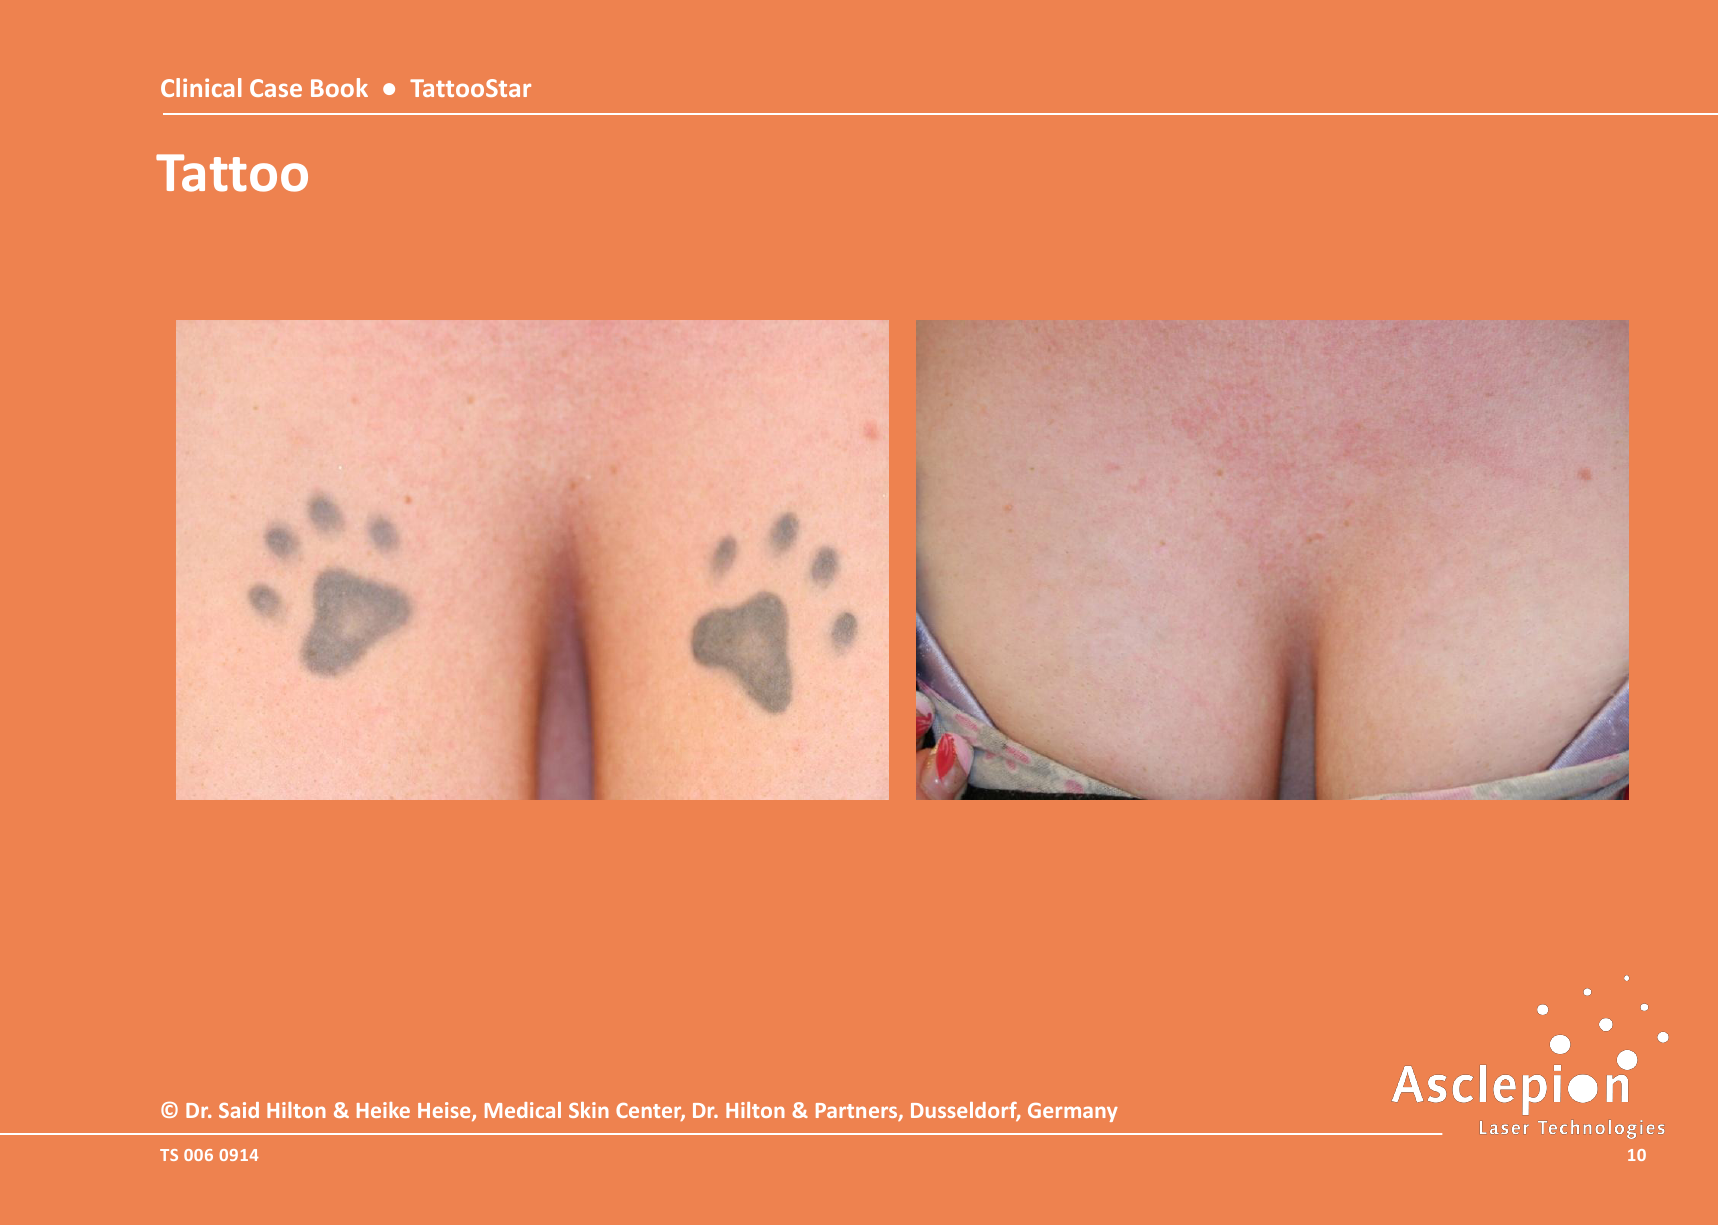 Clinical-Case-Book-2014-TattooStar_091410